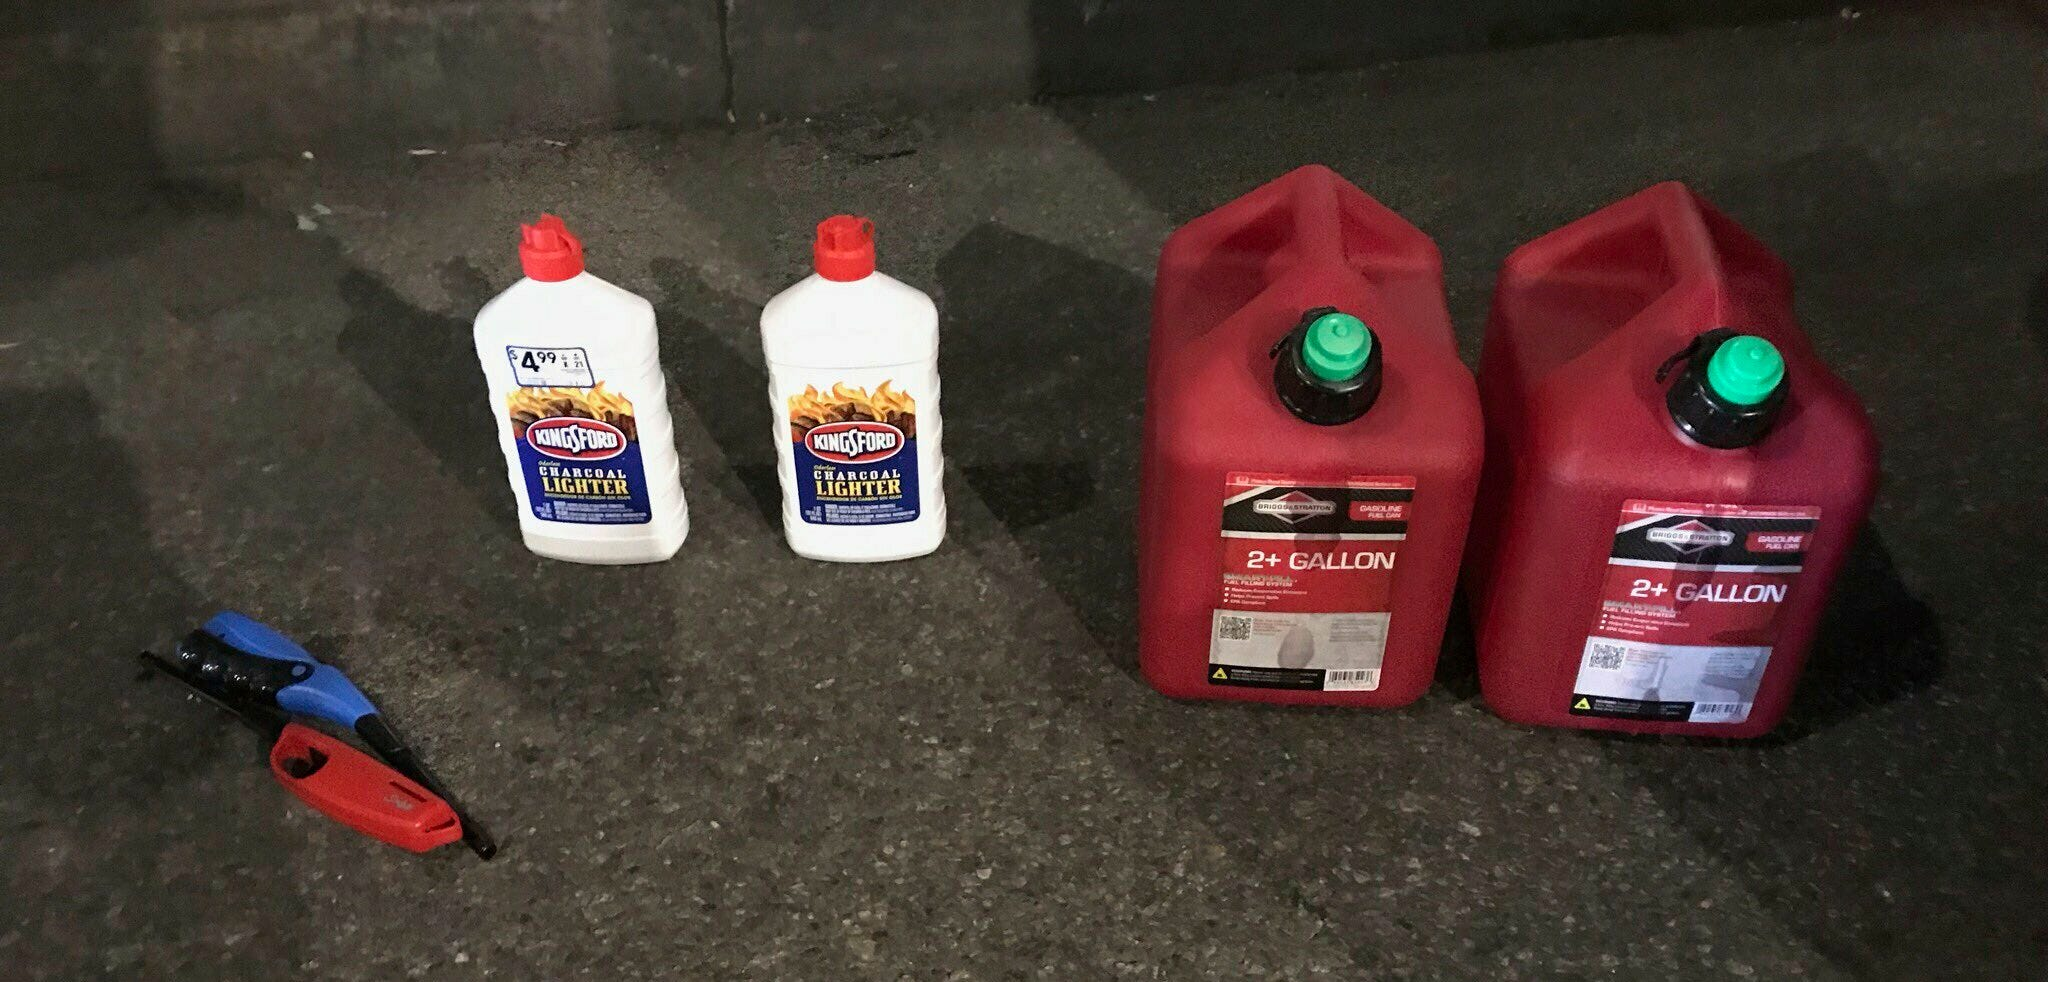 Gas cans and lighter fluid that a New Jersey man was seen carrying as he entered St. Patrick's Cathedral, Wednesday, April 17, 2019, in New York. The suspect has been arrested.